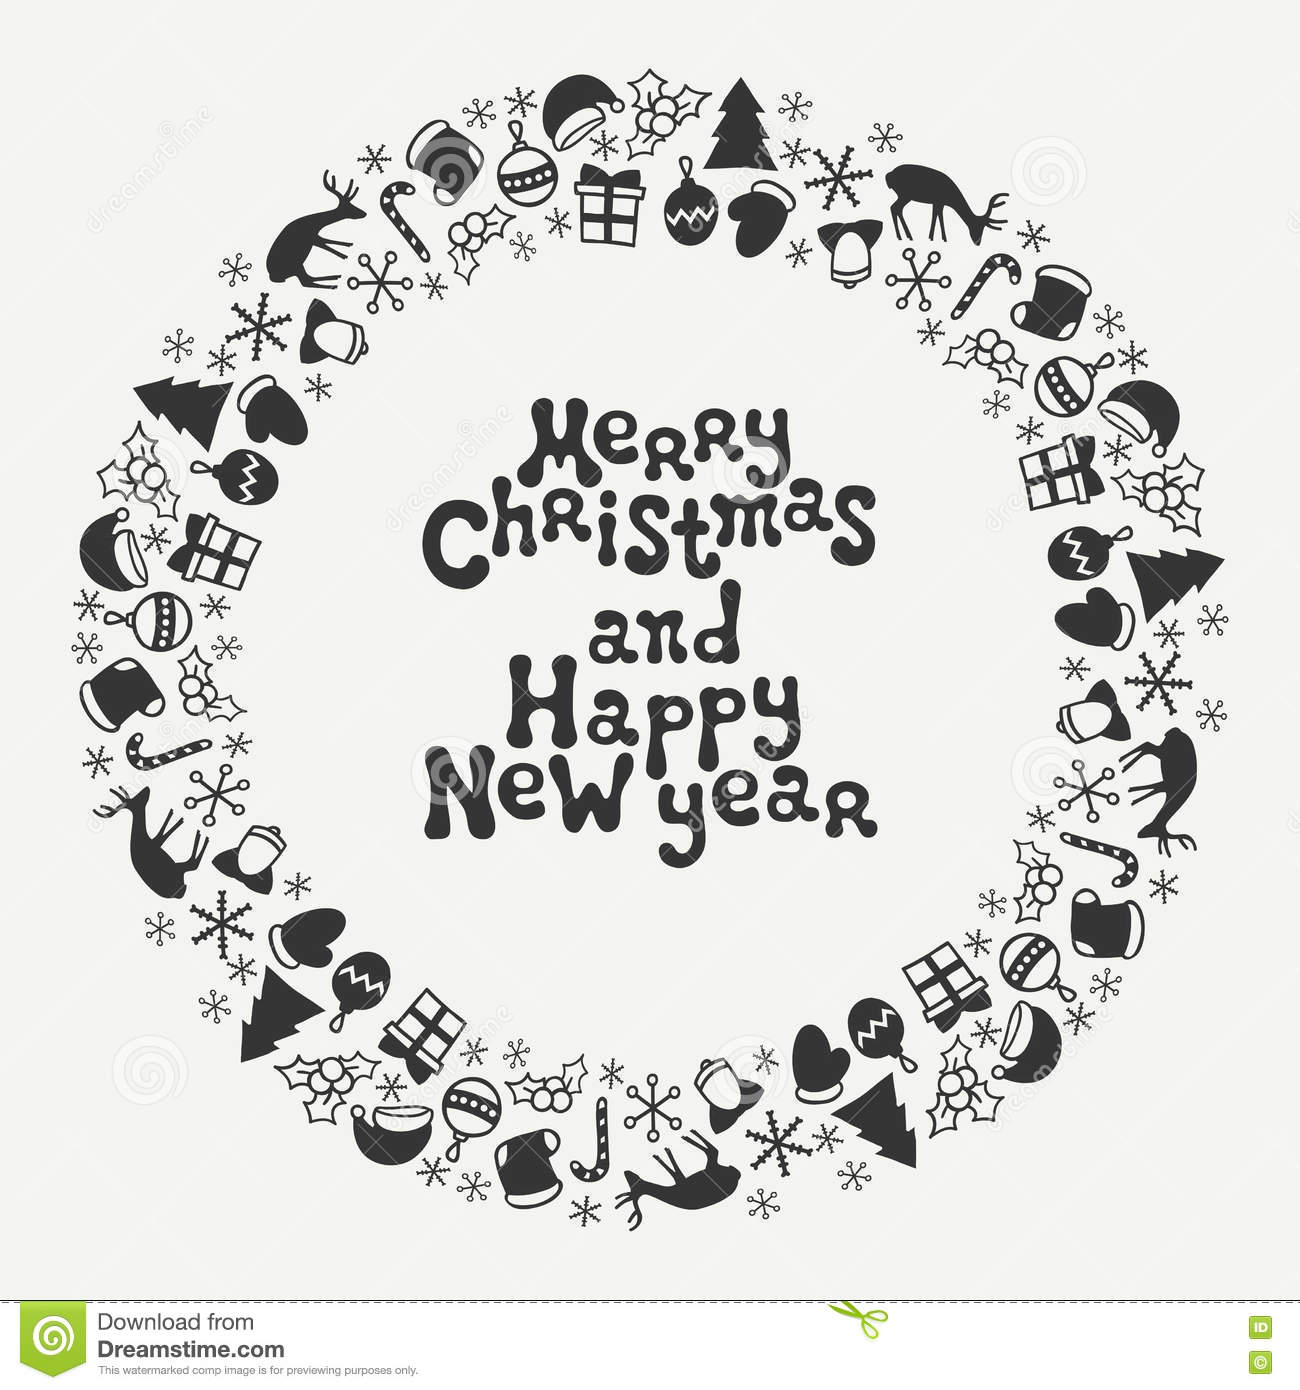 Download Merry Christmas And Happy New Year Lettering Greeting Card 2017 Season Hand Drawn